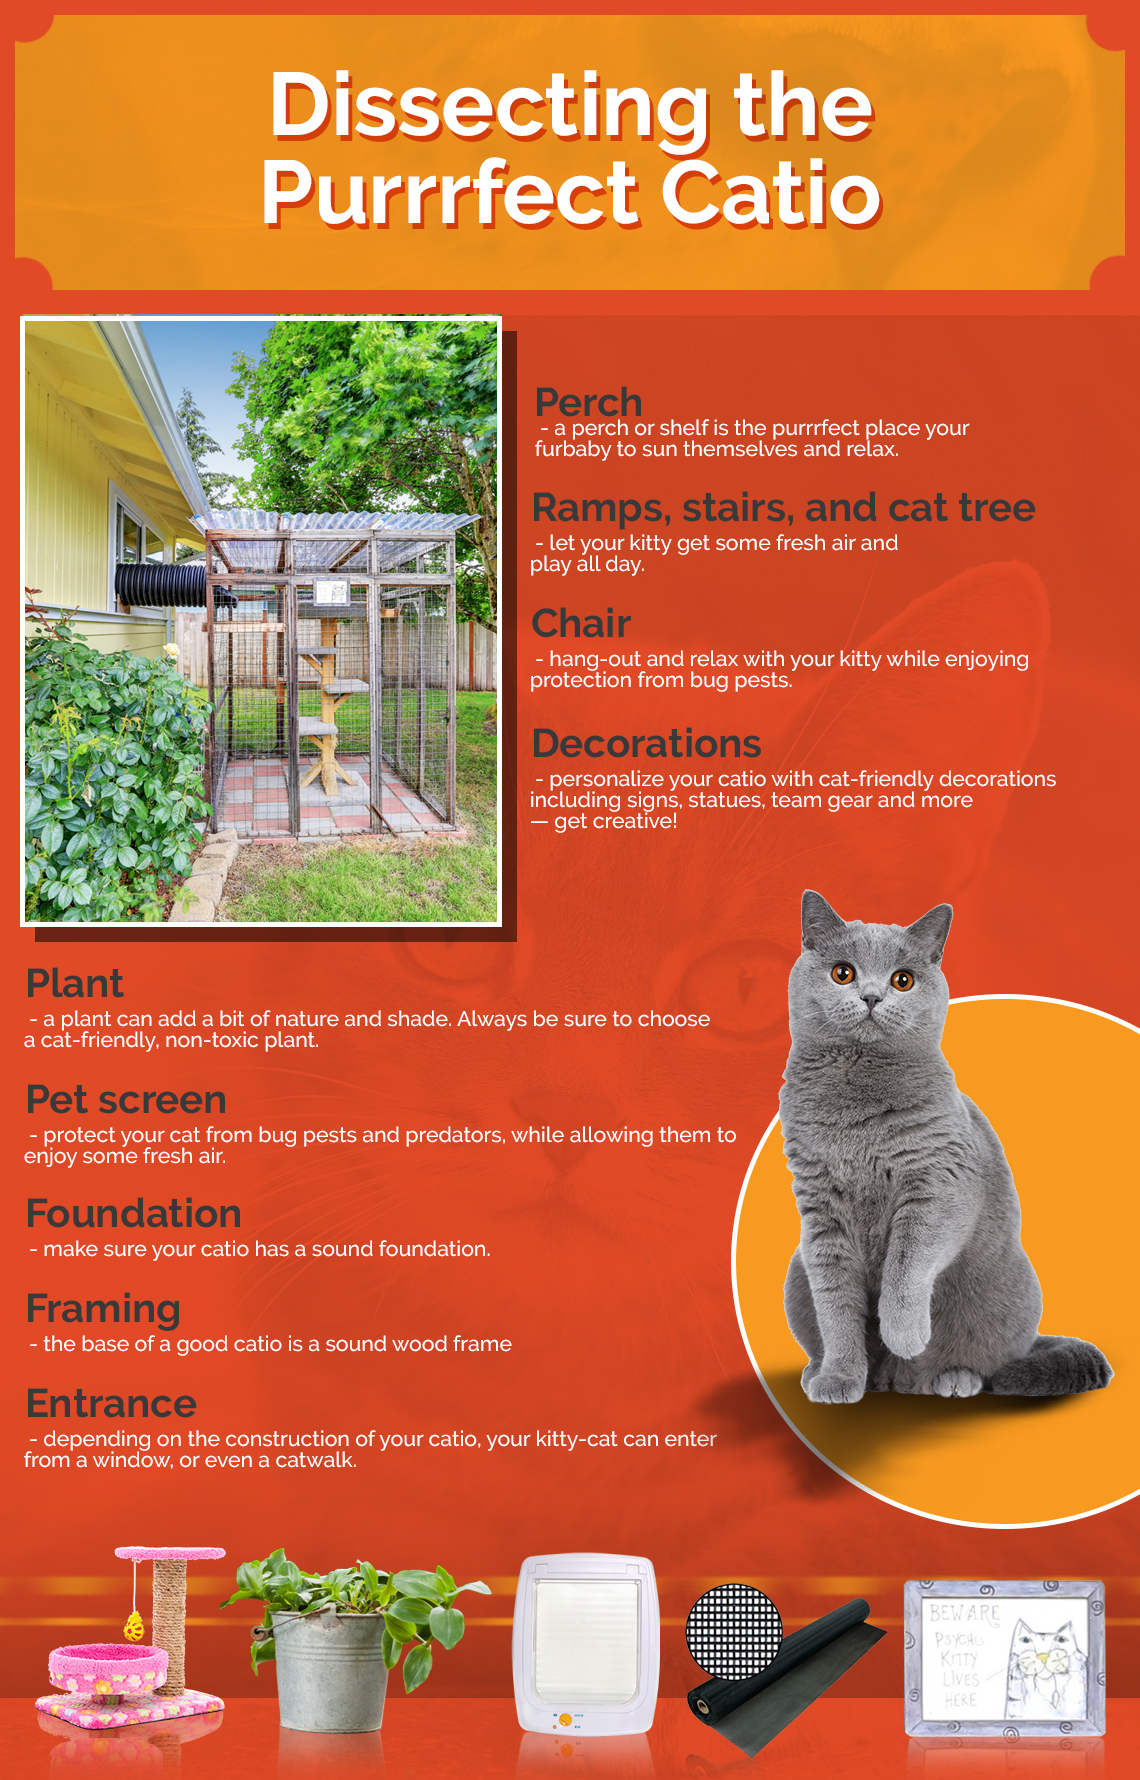 dissecting-the-purrrfect-catio-info.jpg